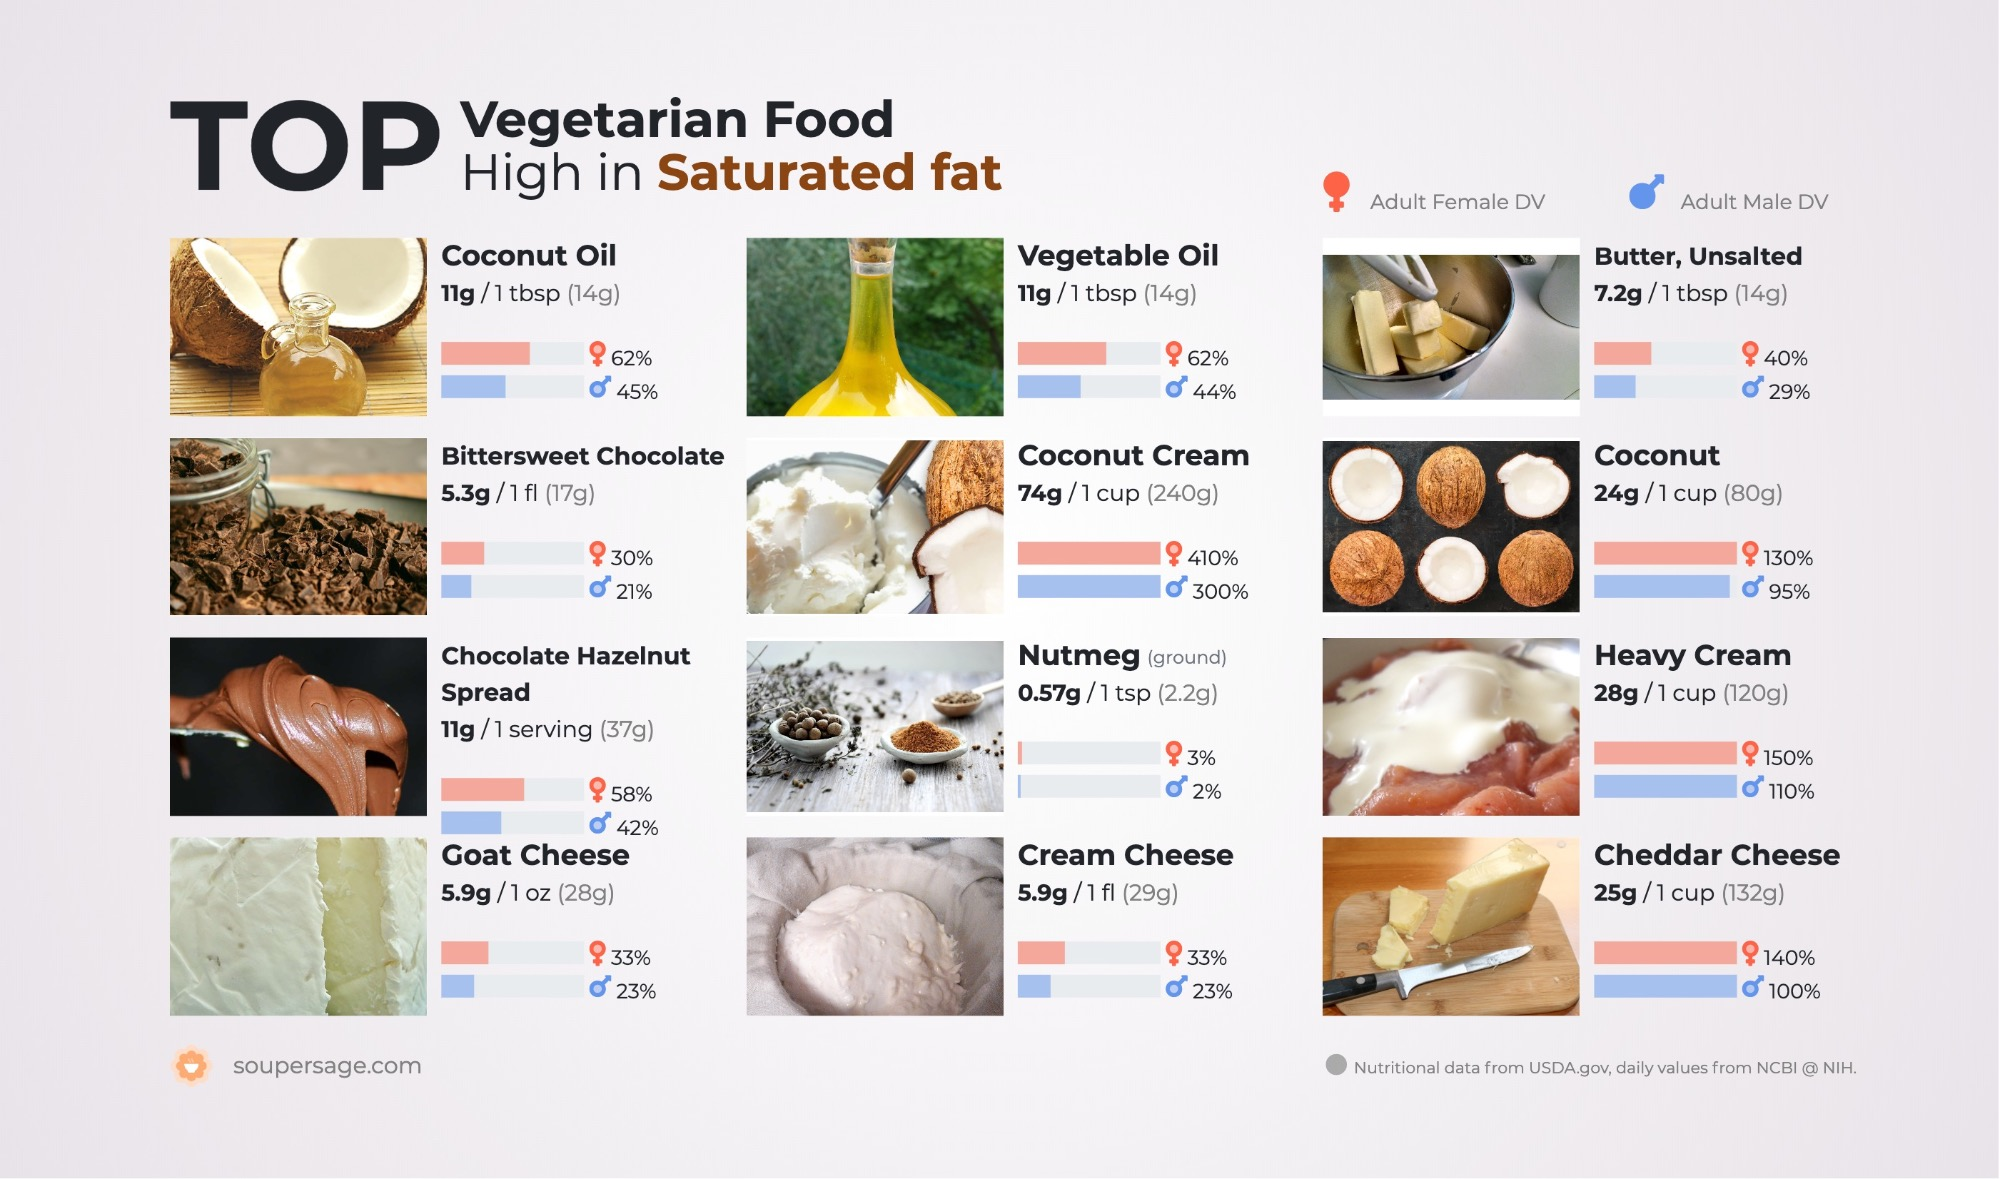 image of Top Vegetarian Food High in Saturated fat